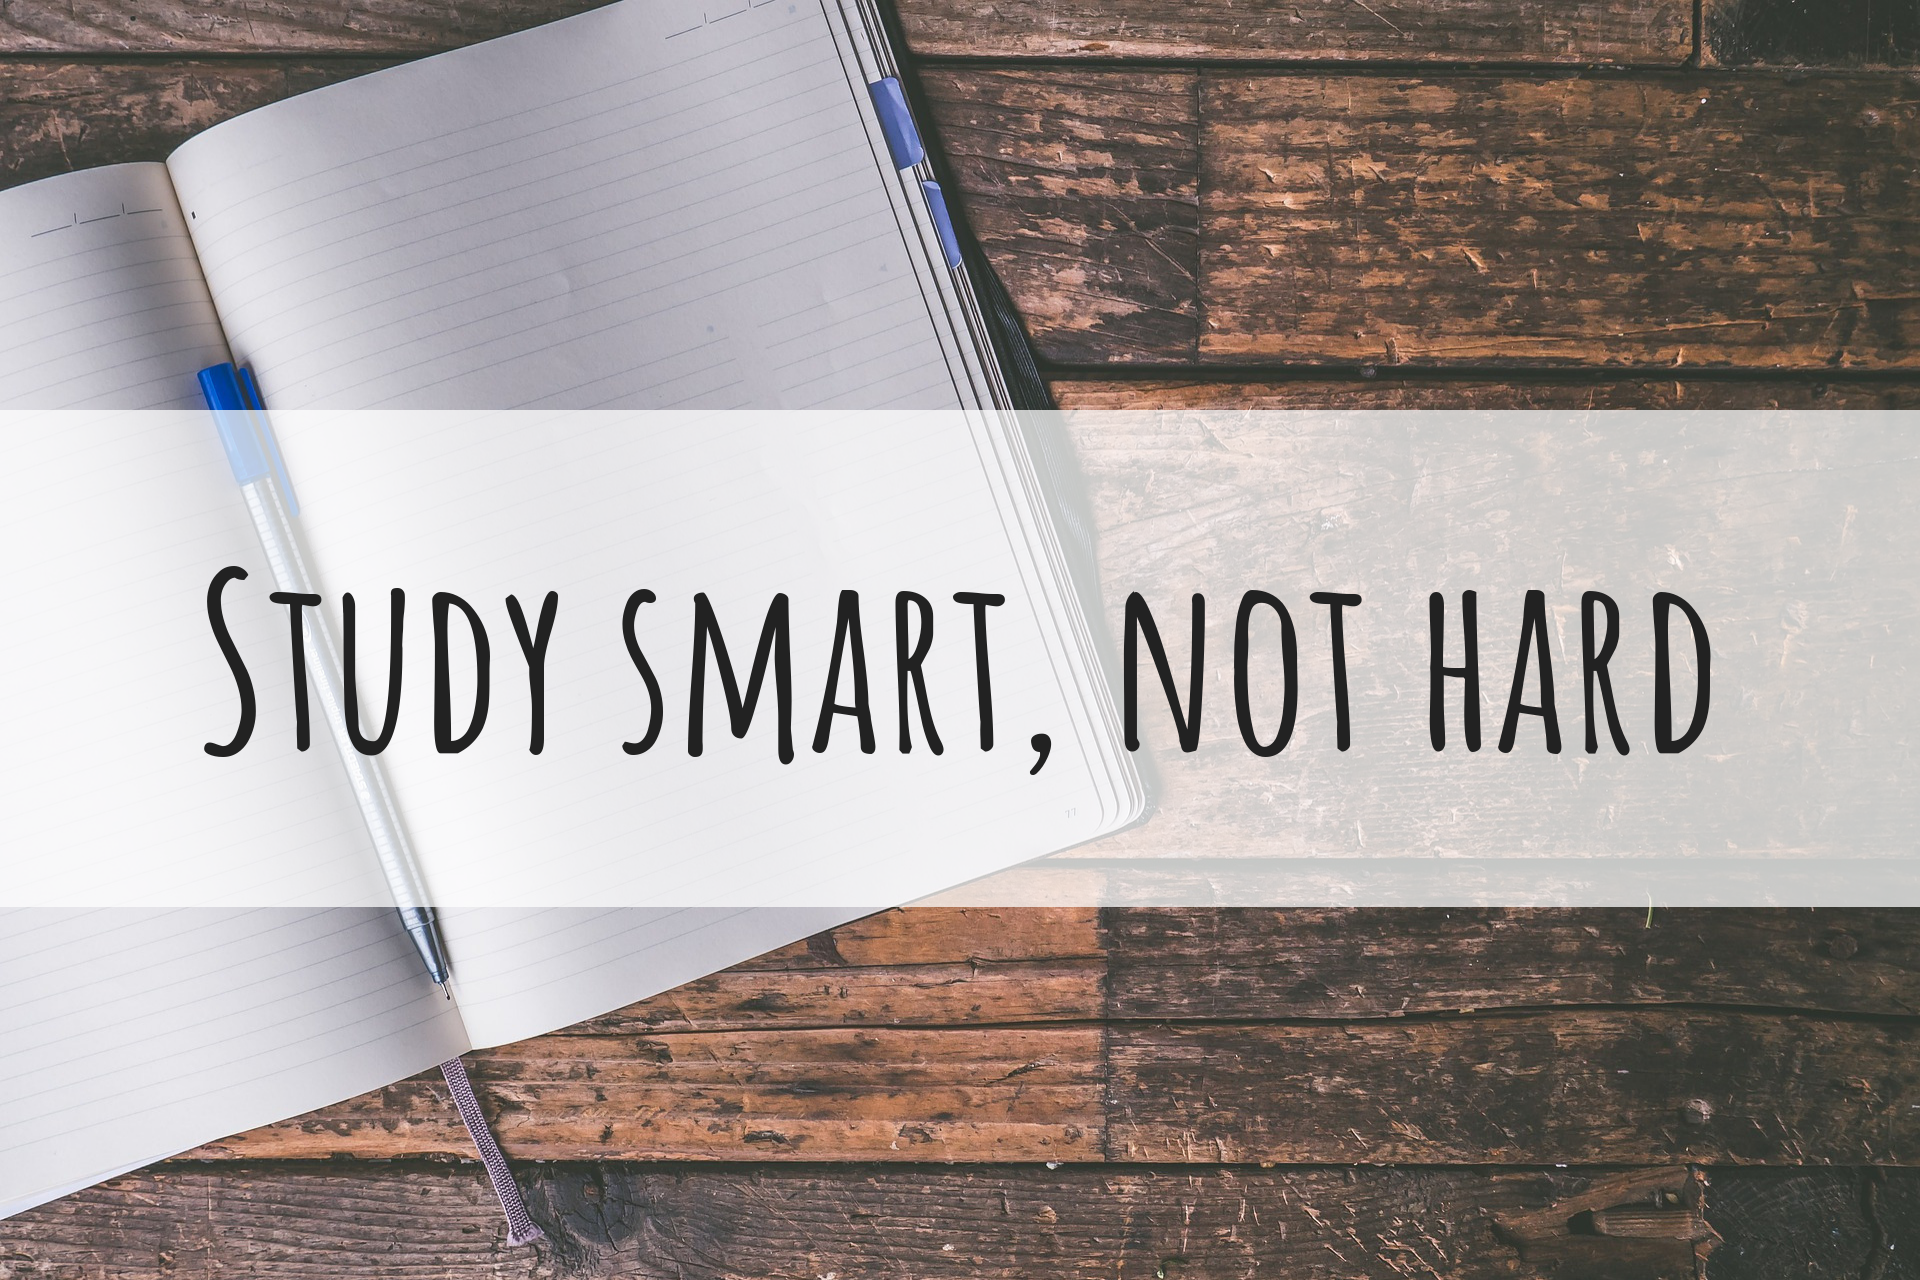 study_smart_not_hard.png